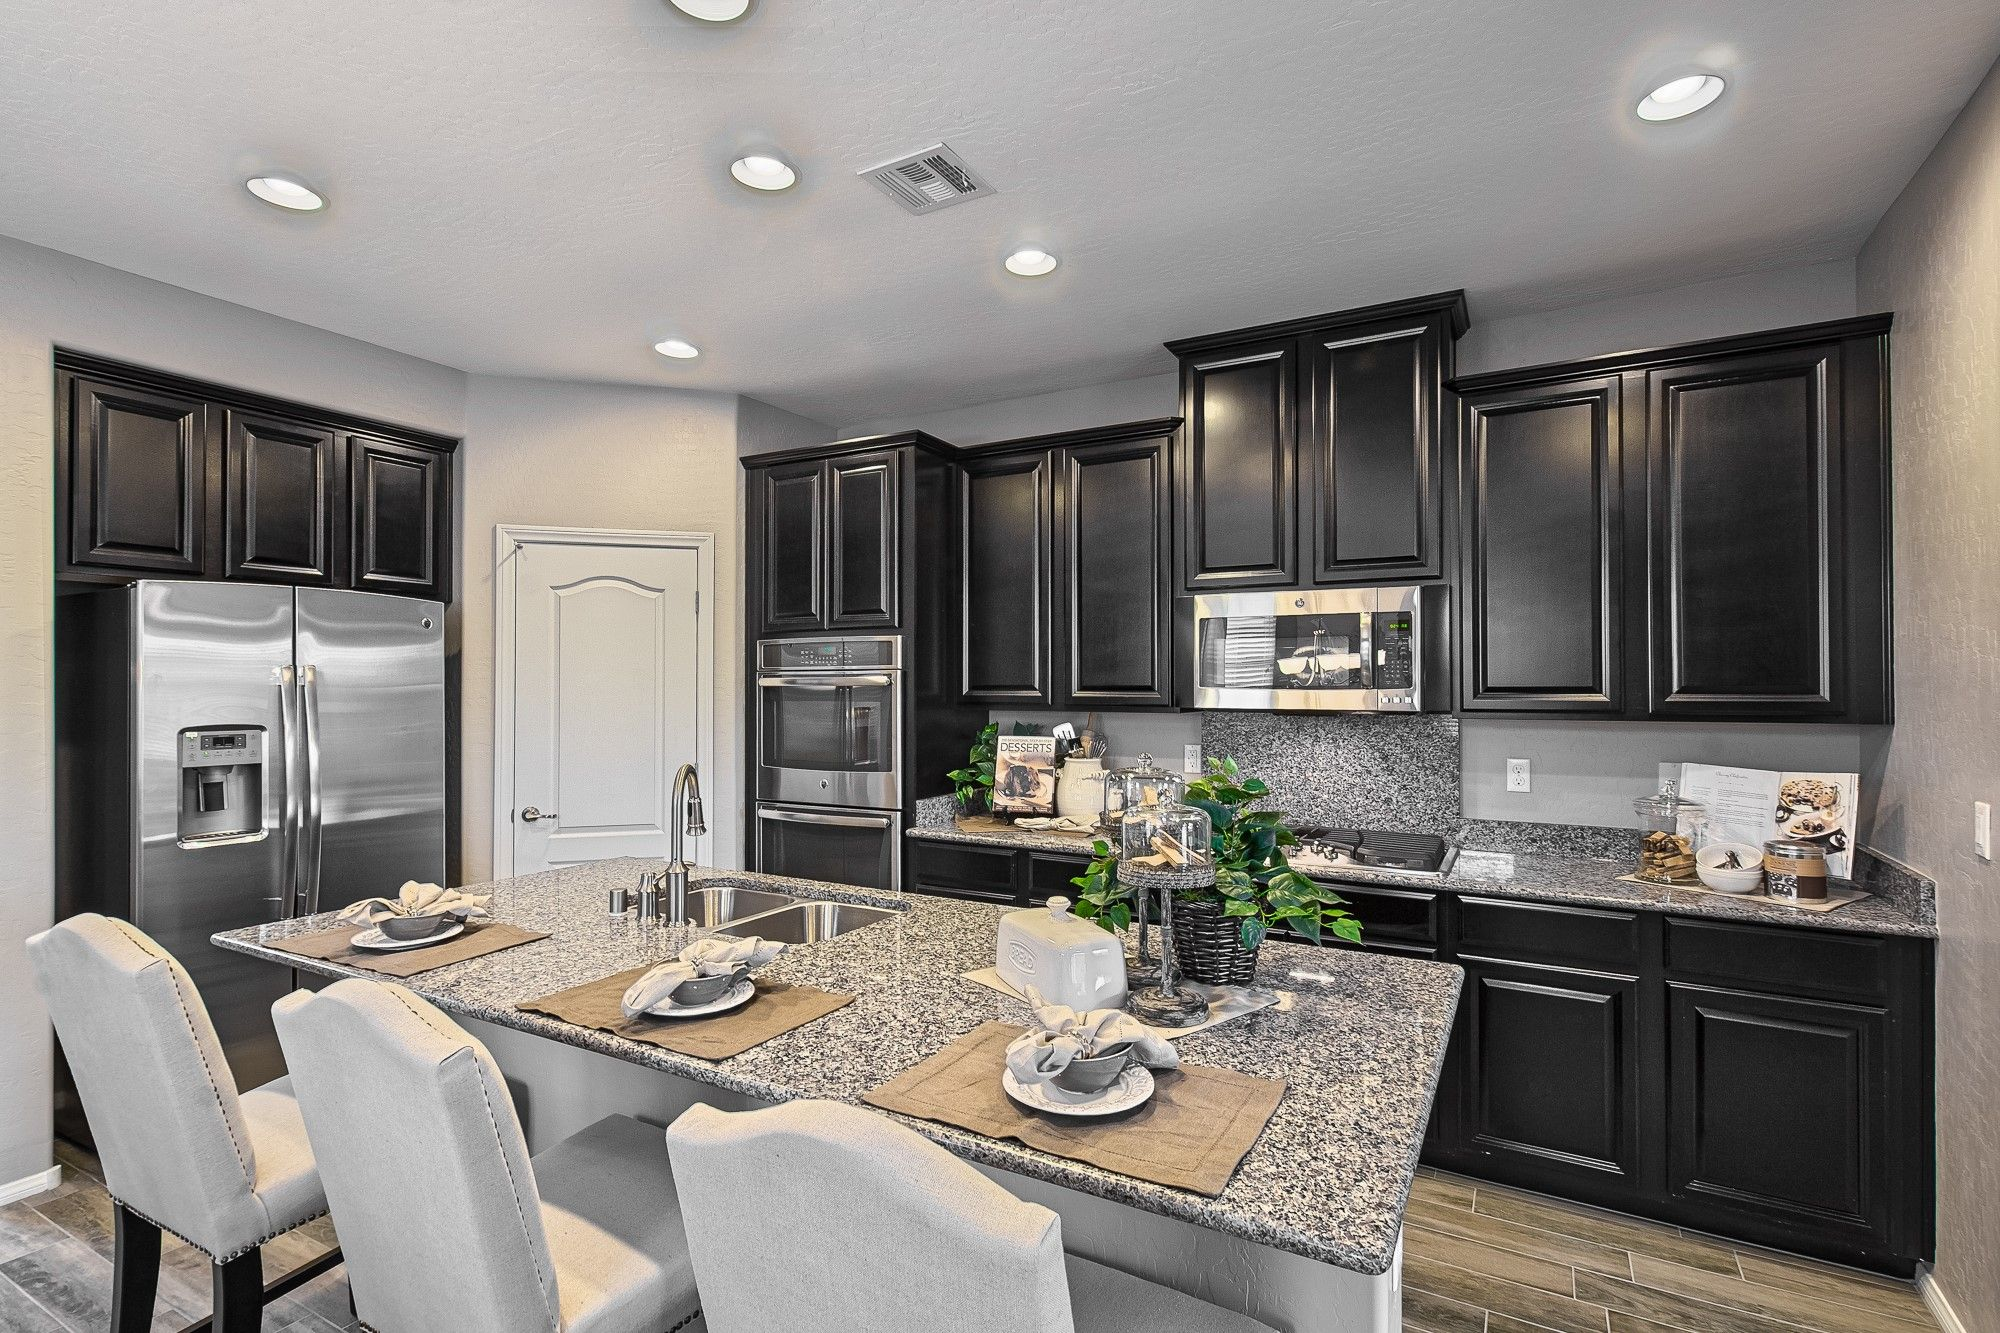 Elegant Kitchen Cabinets Las Vegas Would Dark Kitchen Cabinets Be A Delight Instead Of Ones